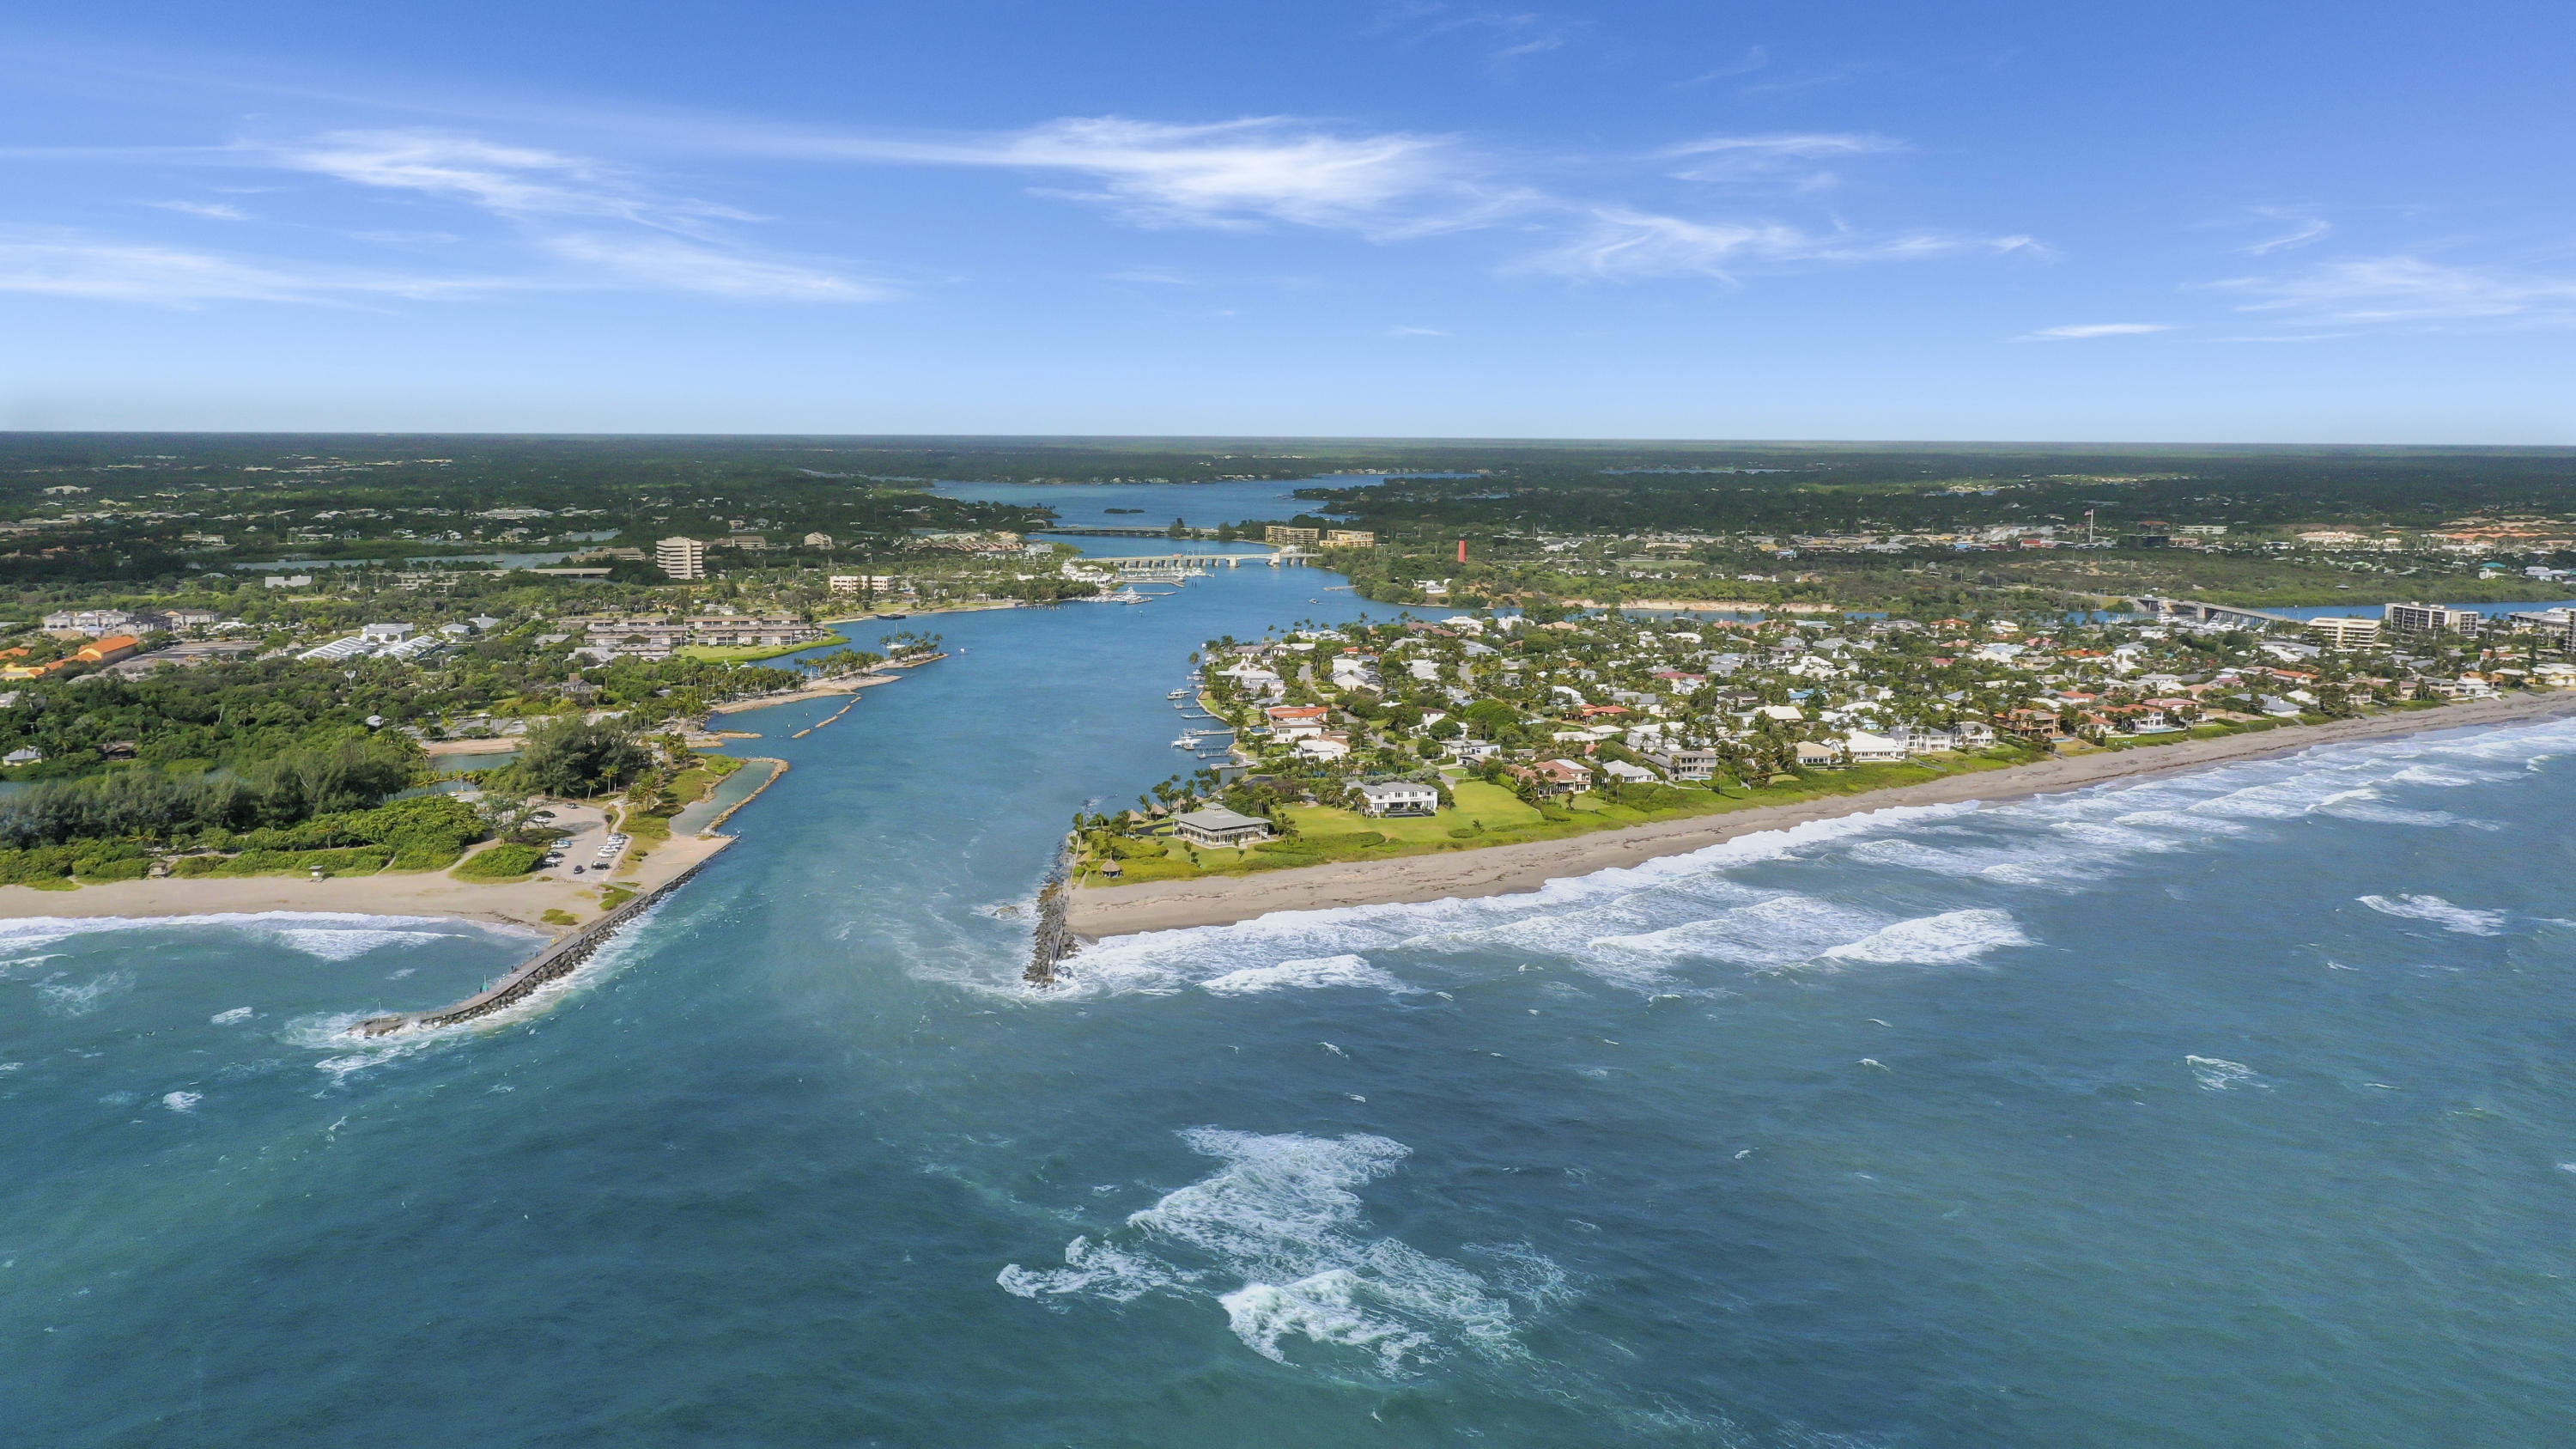 JUPITER INLET COLONY JUPITER INLET COLONY FLORIDA